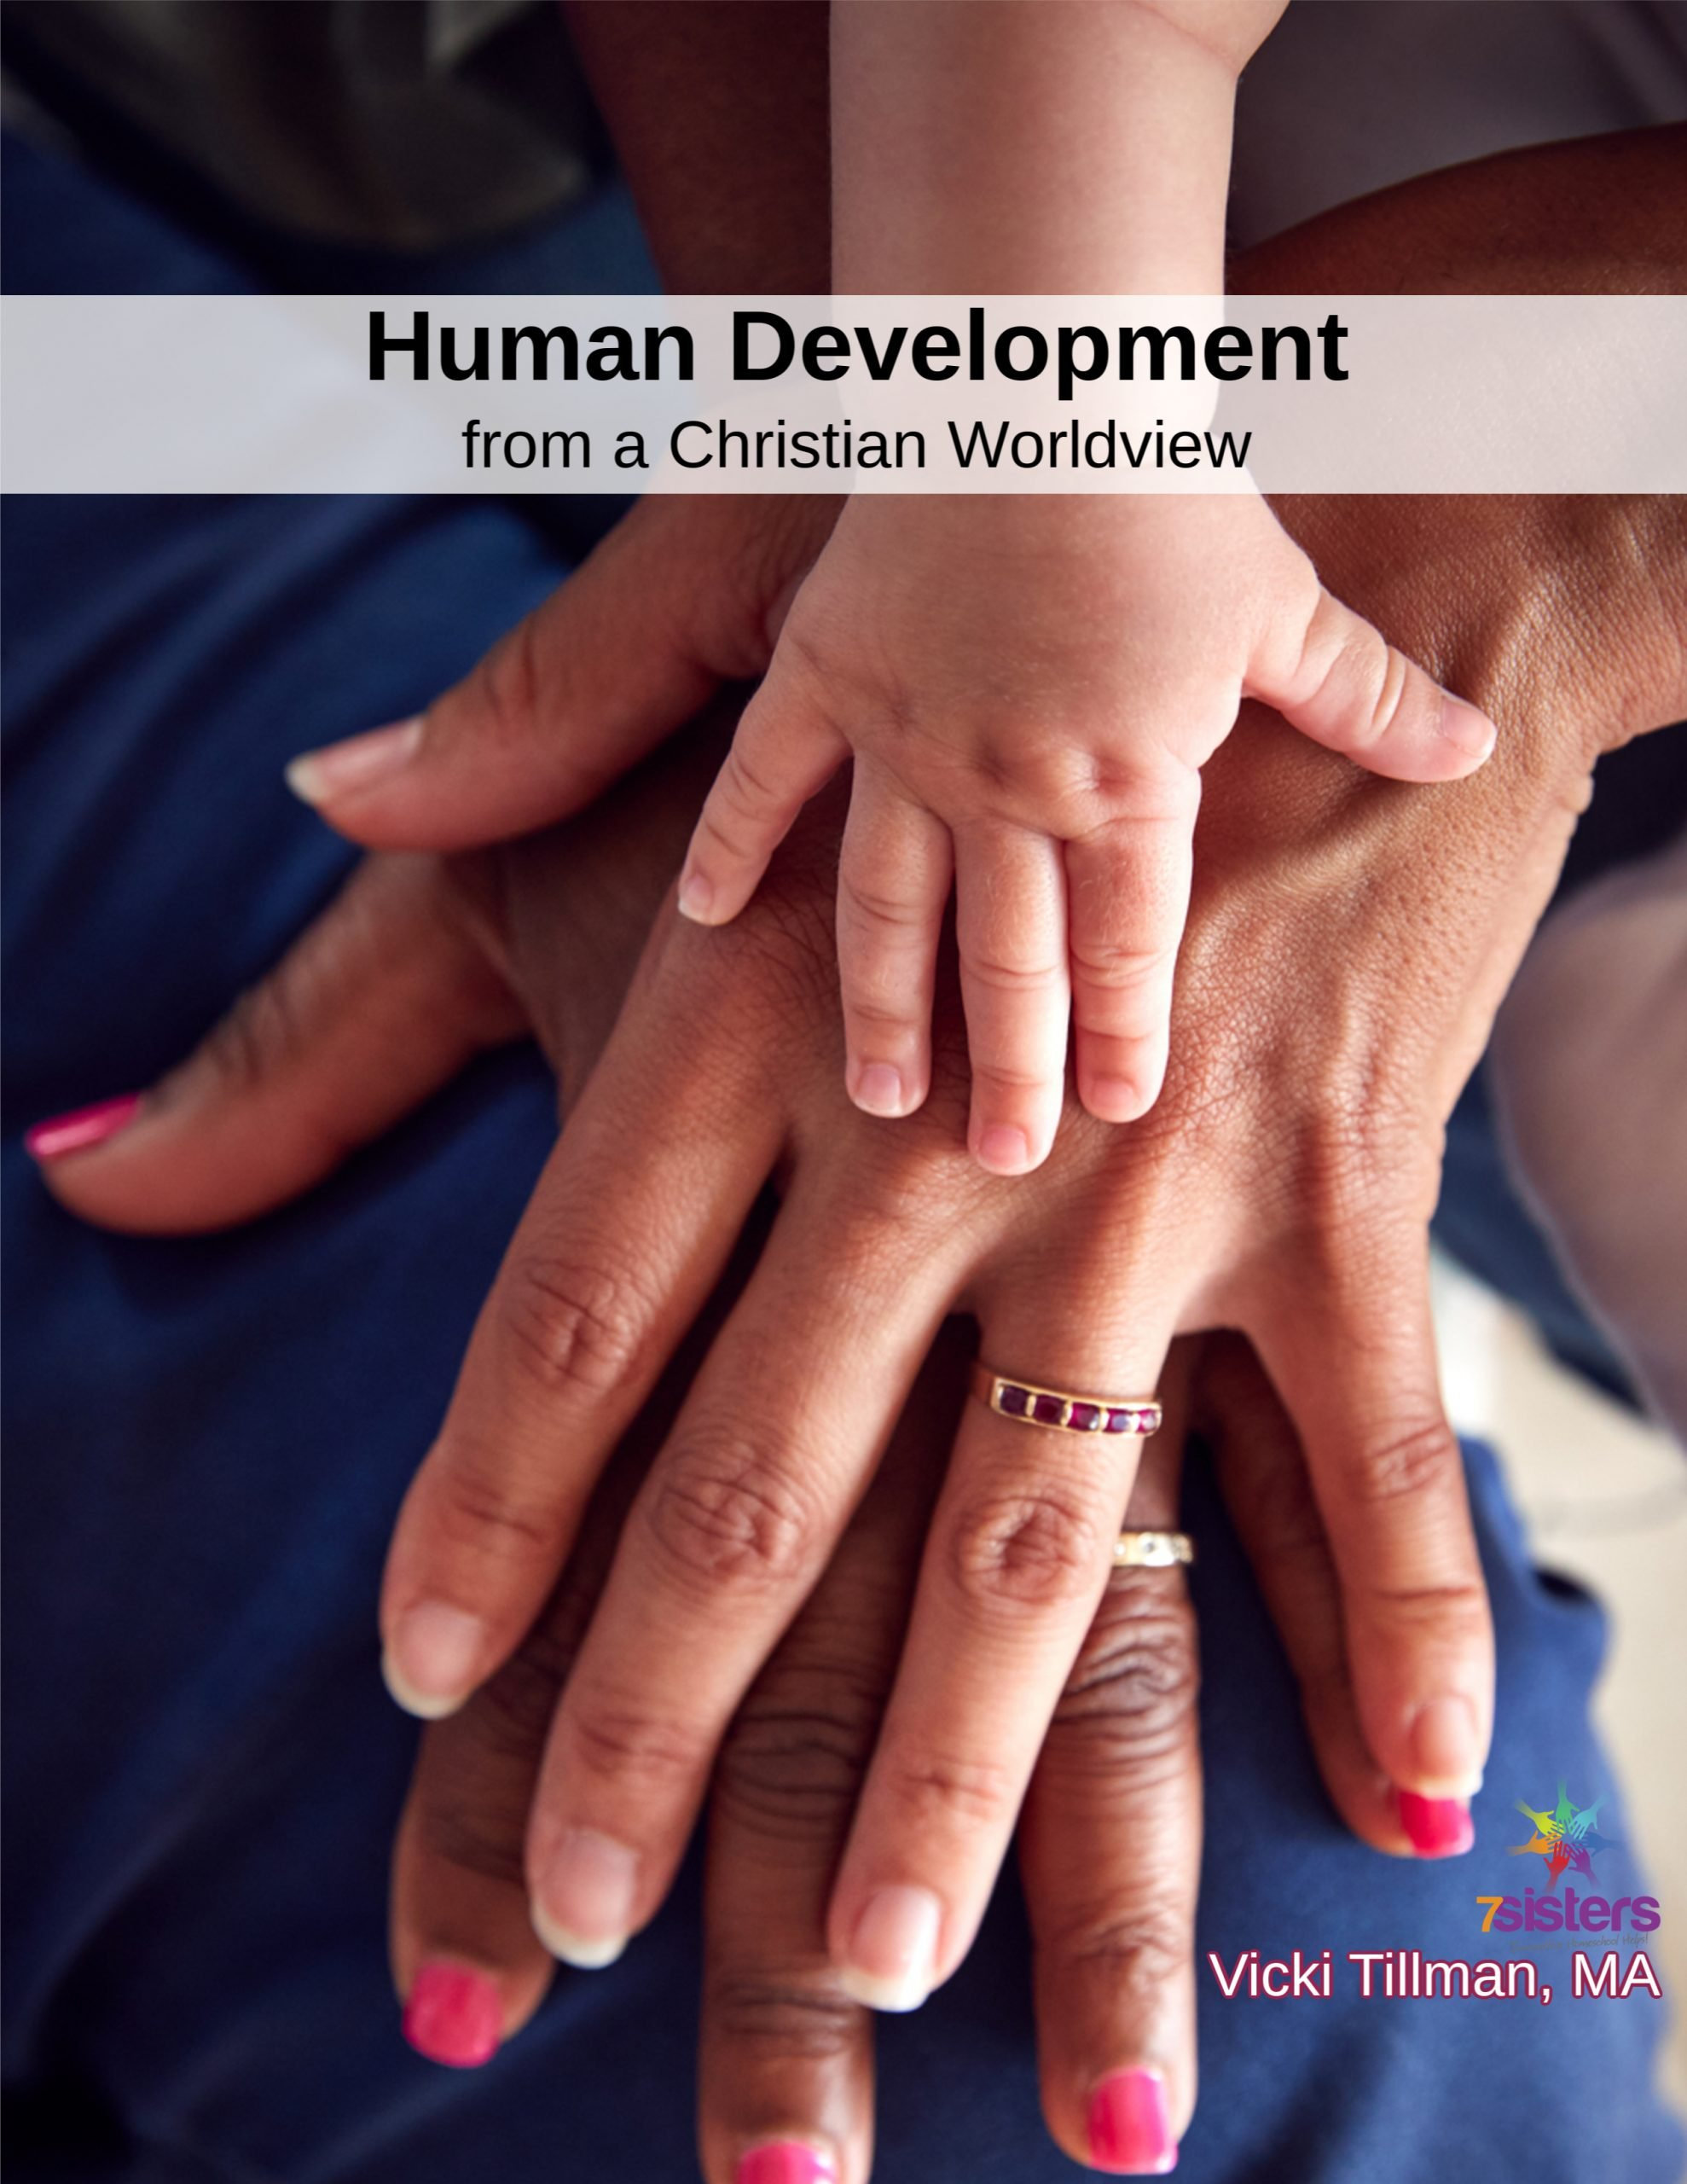 Human Development 7SistersHomeschool